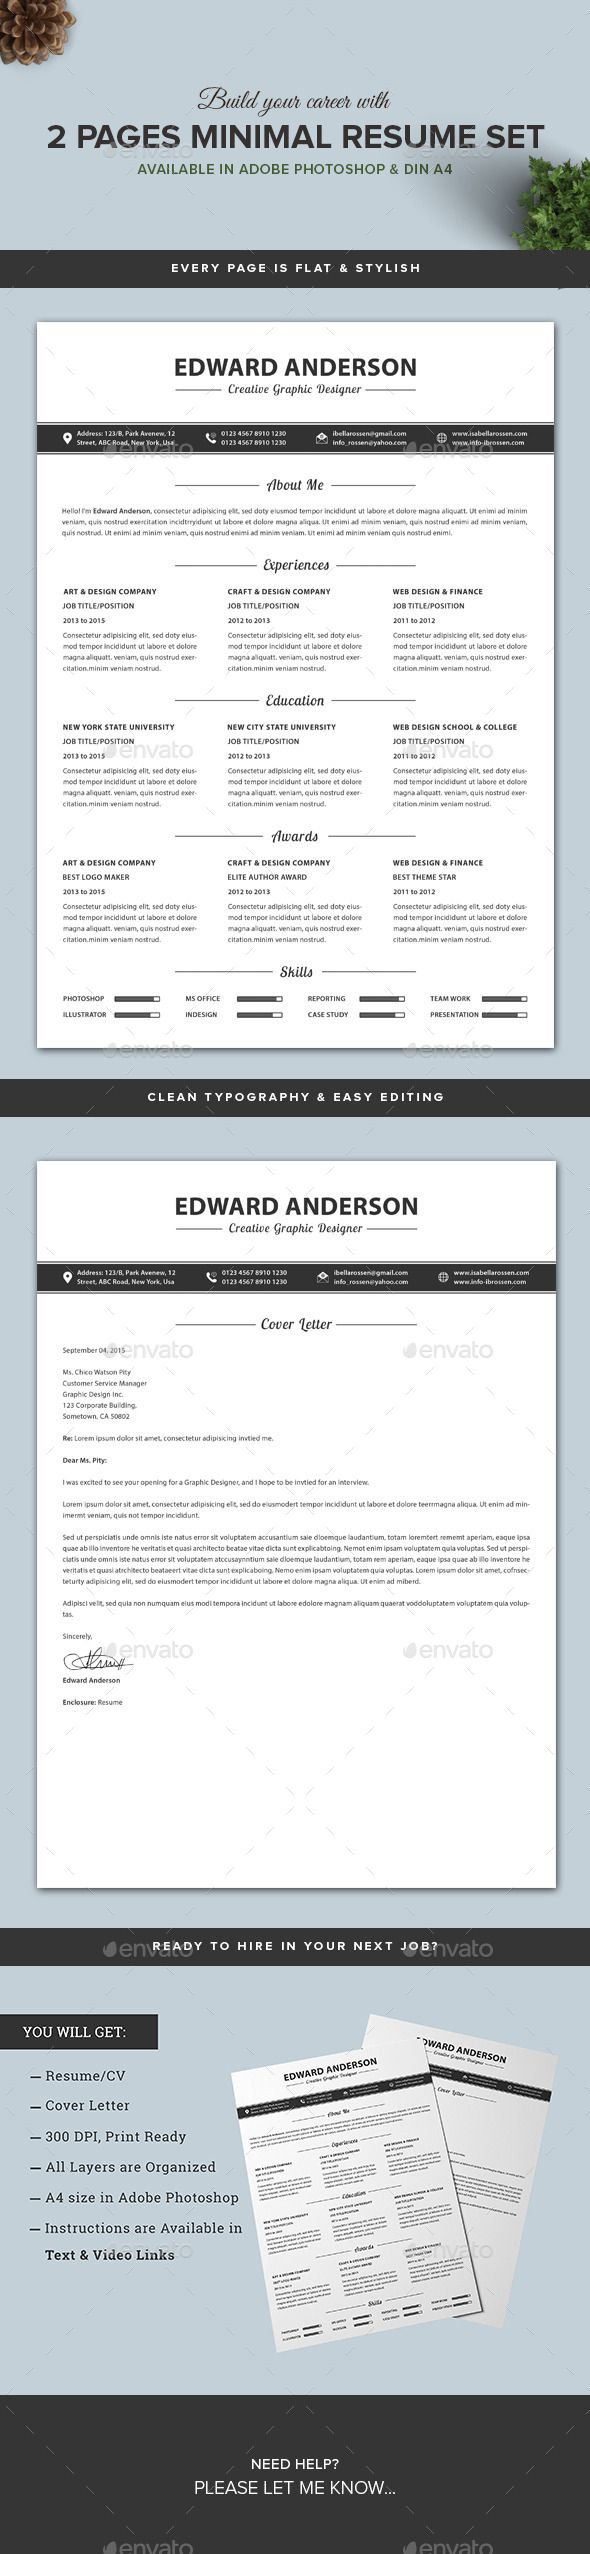 Buy 2 Pages Minimal ResumeCV Set by